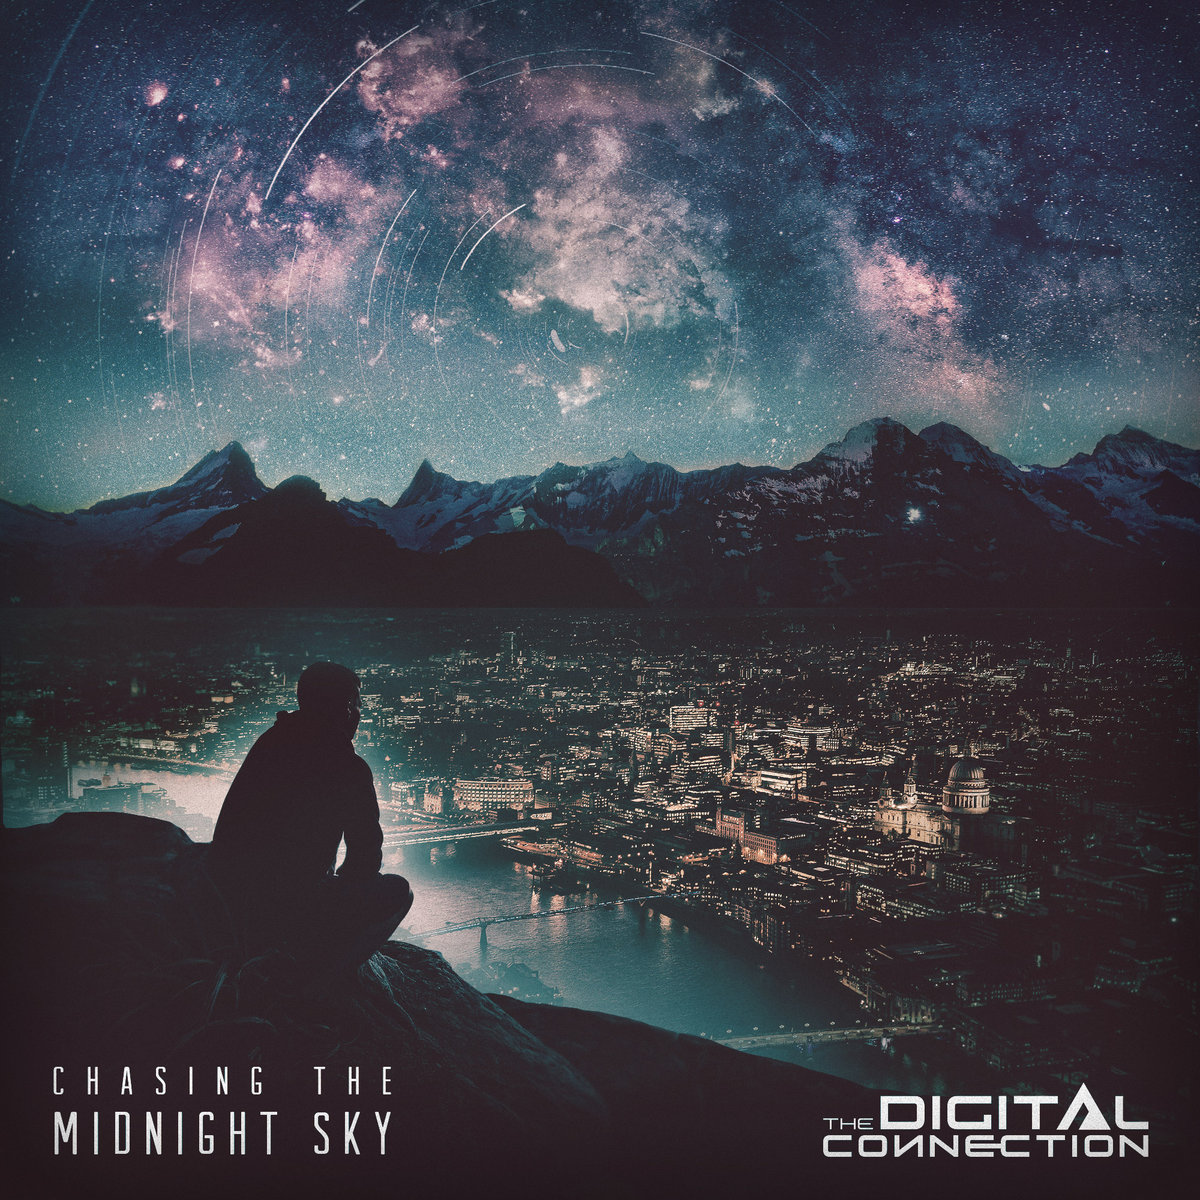 The Digital Connection - Sometimes Stuck @ 'Chasing The Midnight Sky' album (colorado, idm)